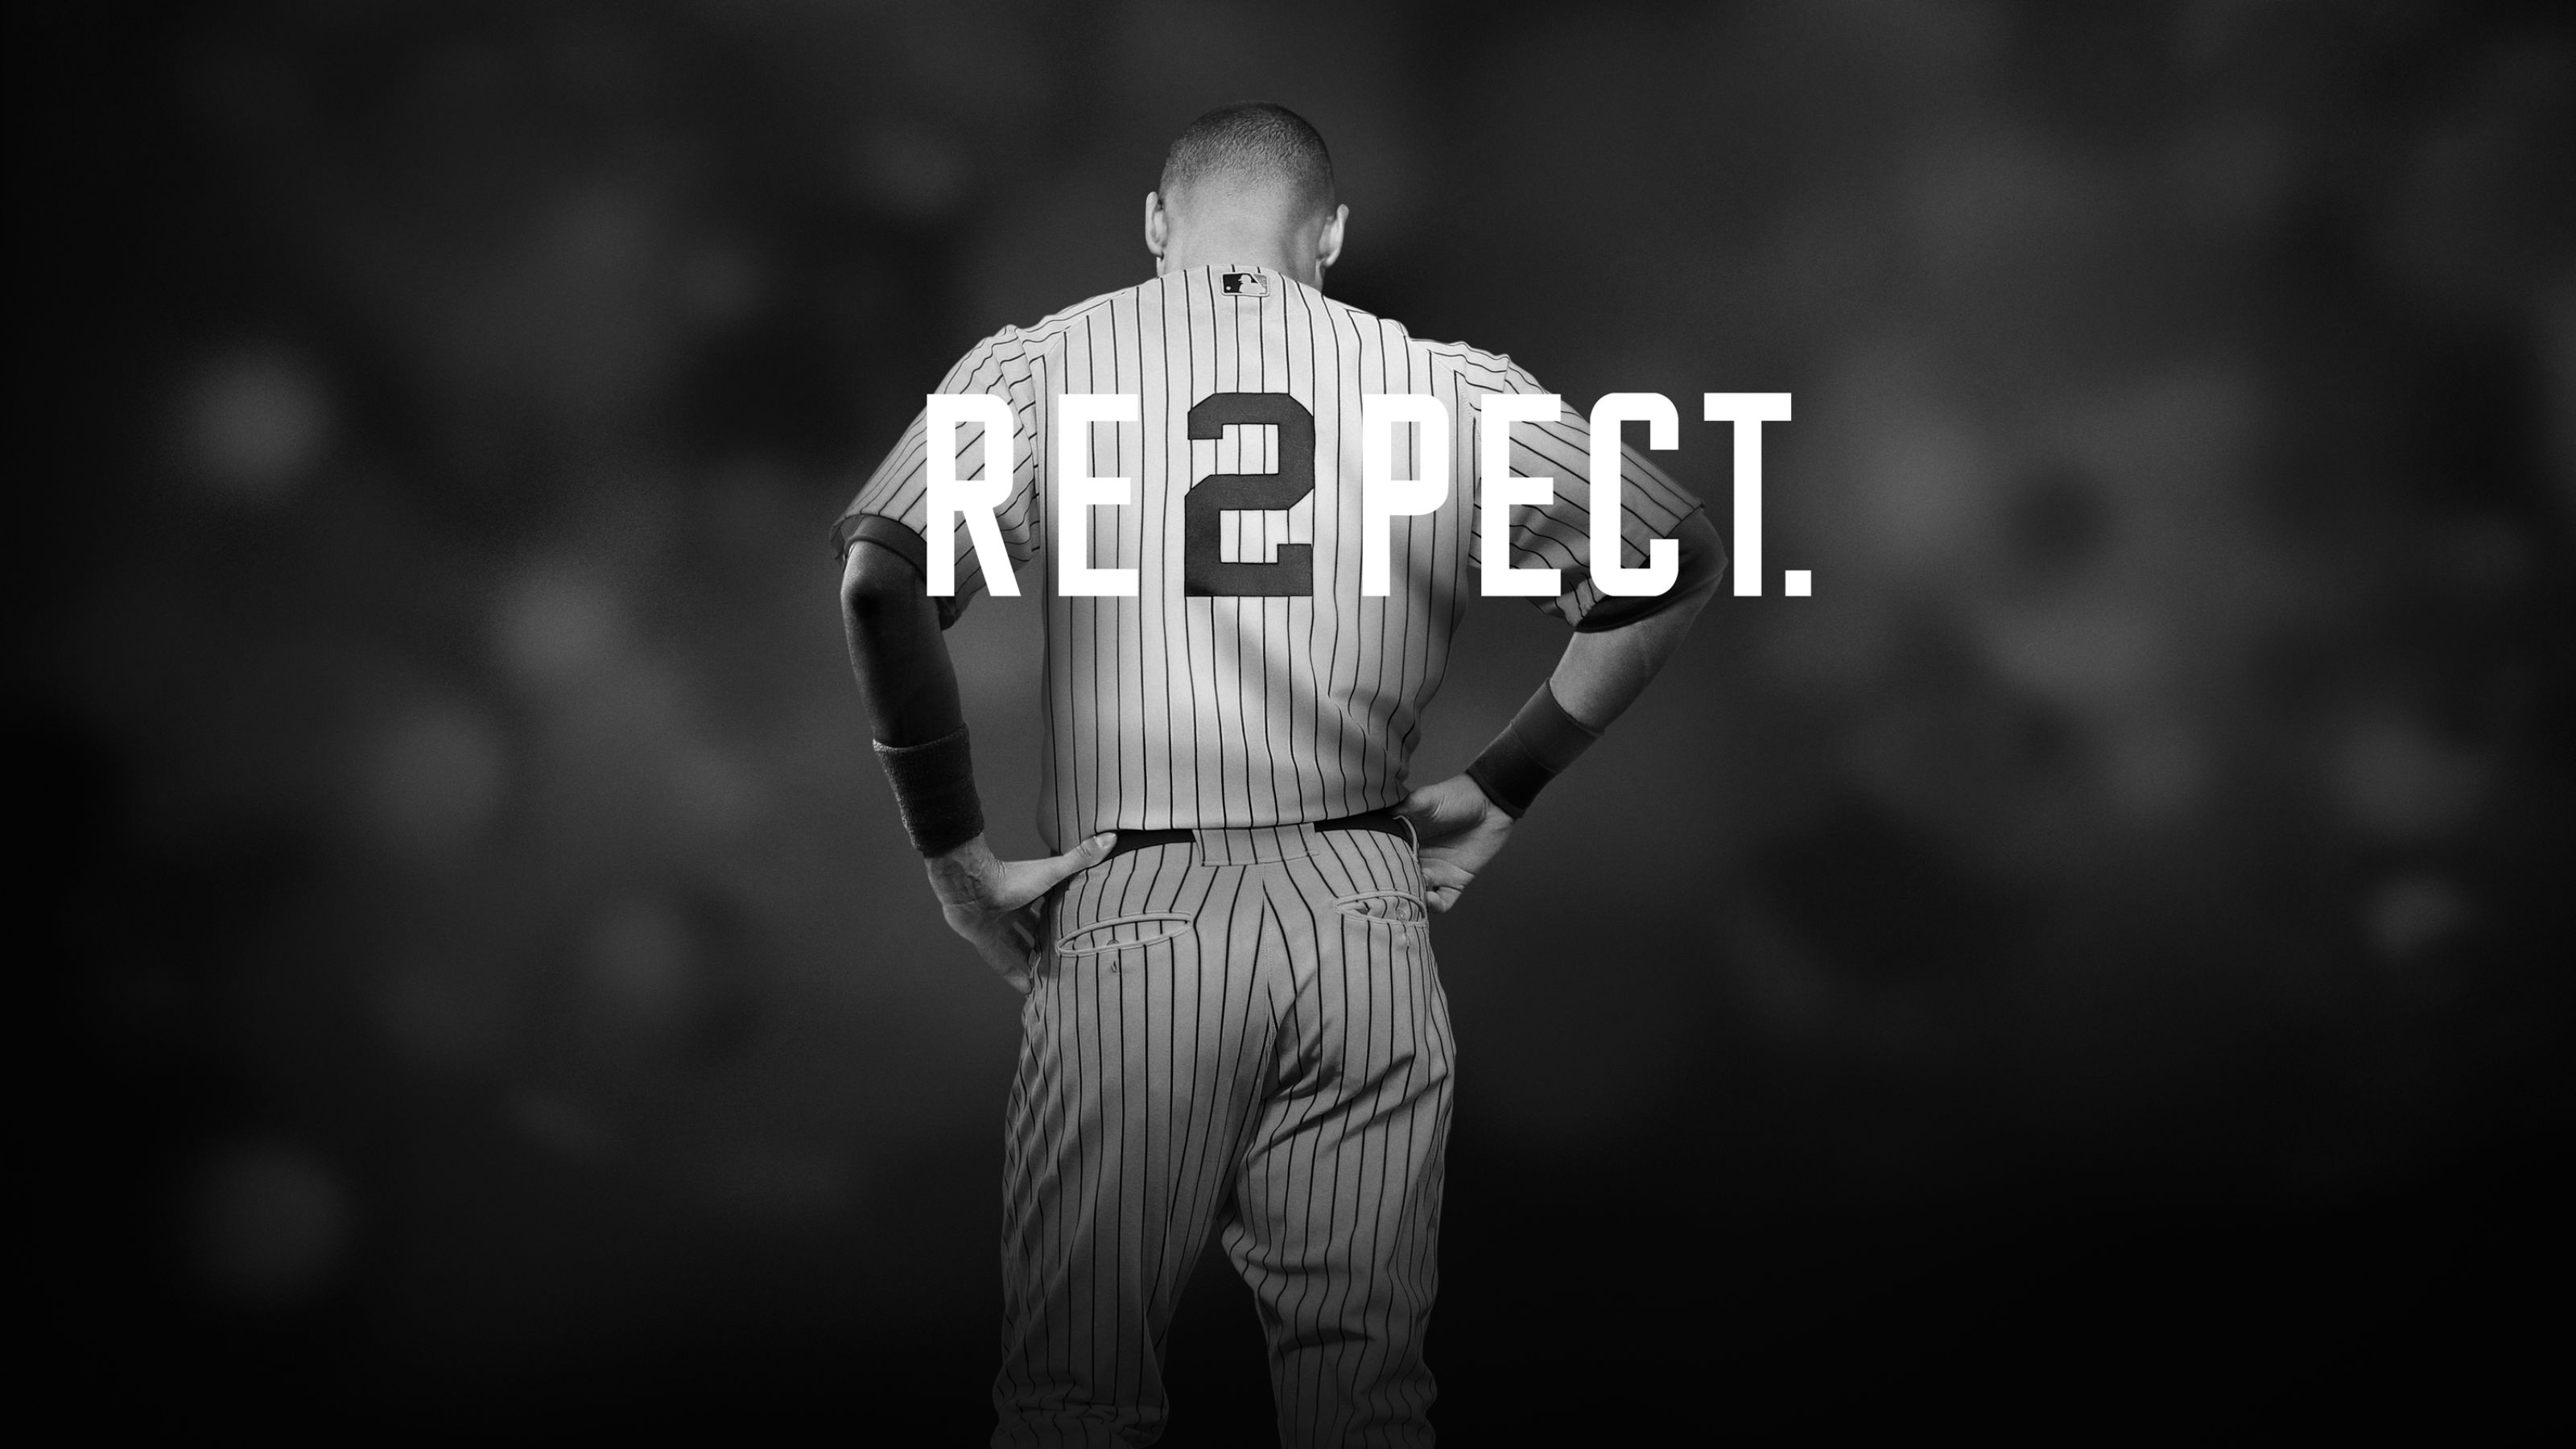 Derek Jeter Full HD Wallpaper And Background Image